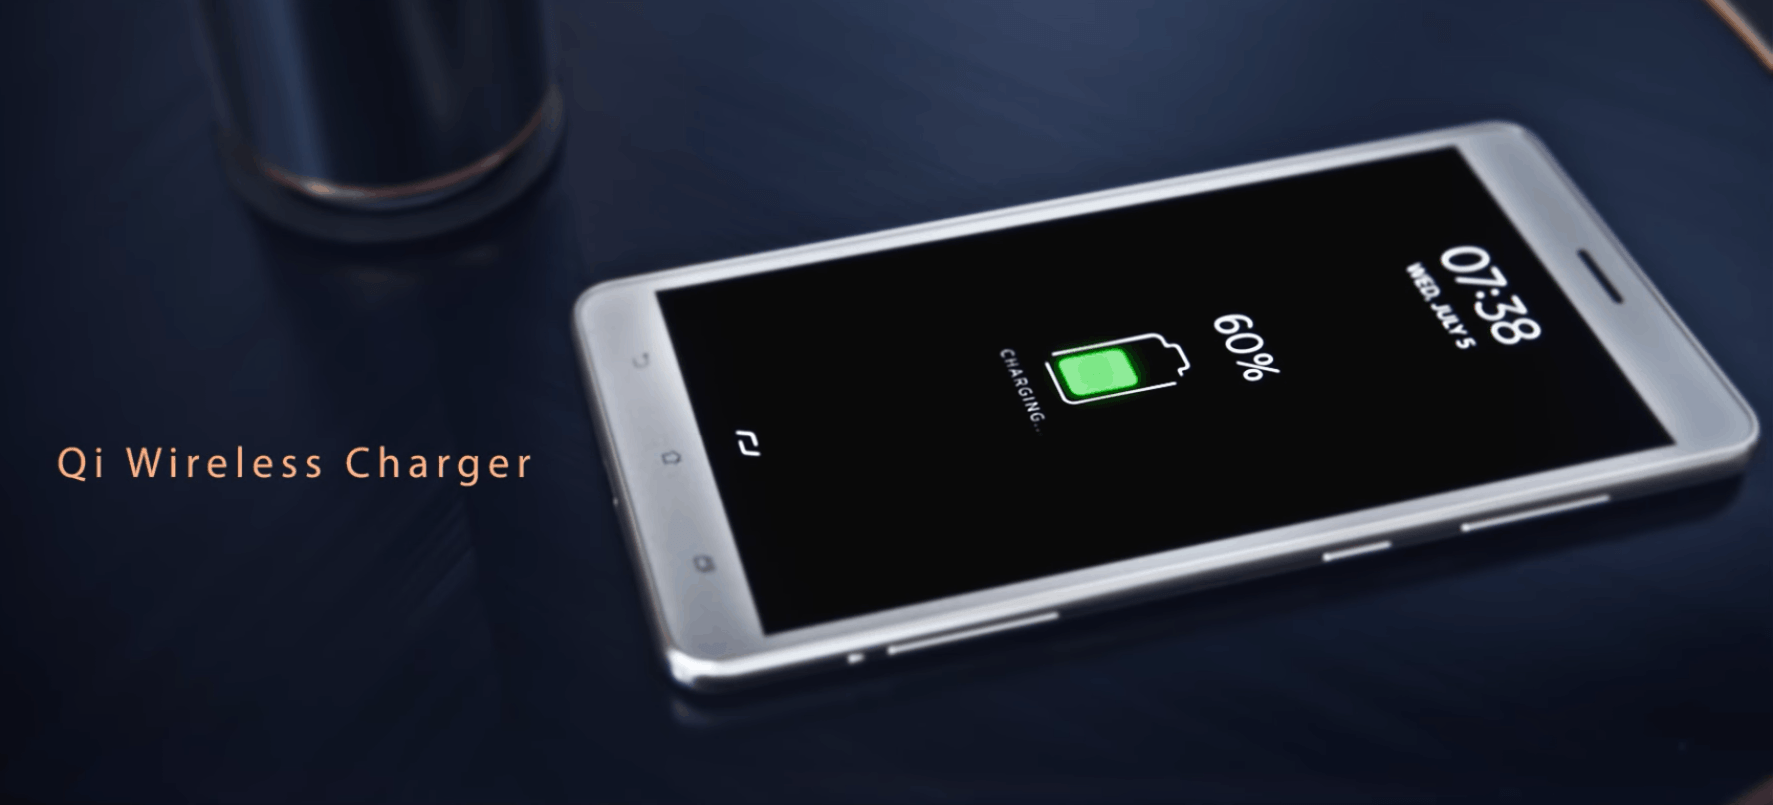 The Zen AiO supports Qi wireless charging of phones on top of the PC's base.